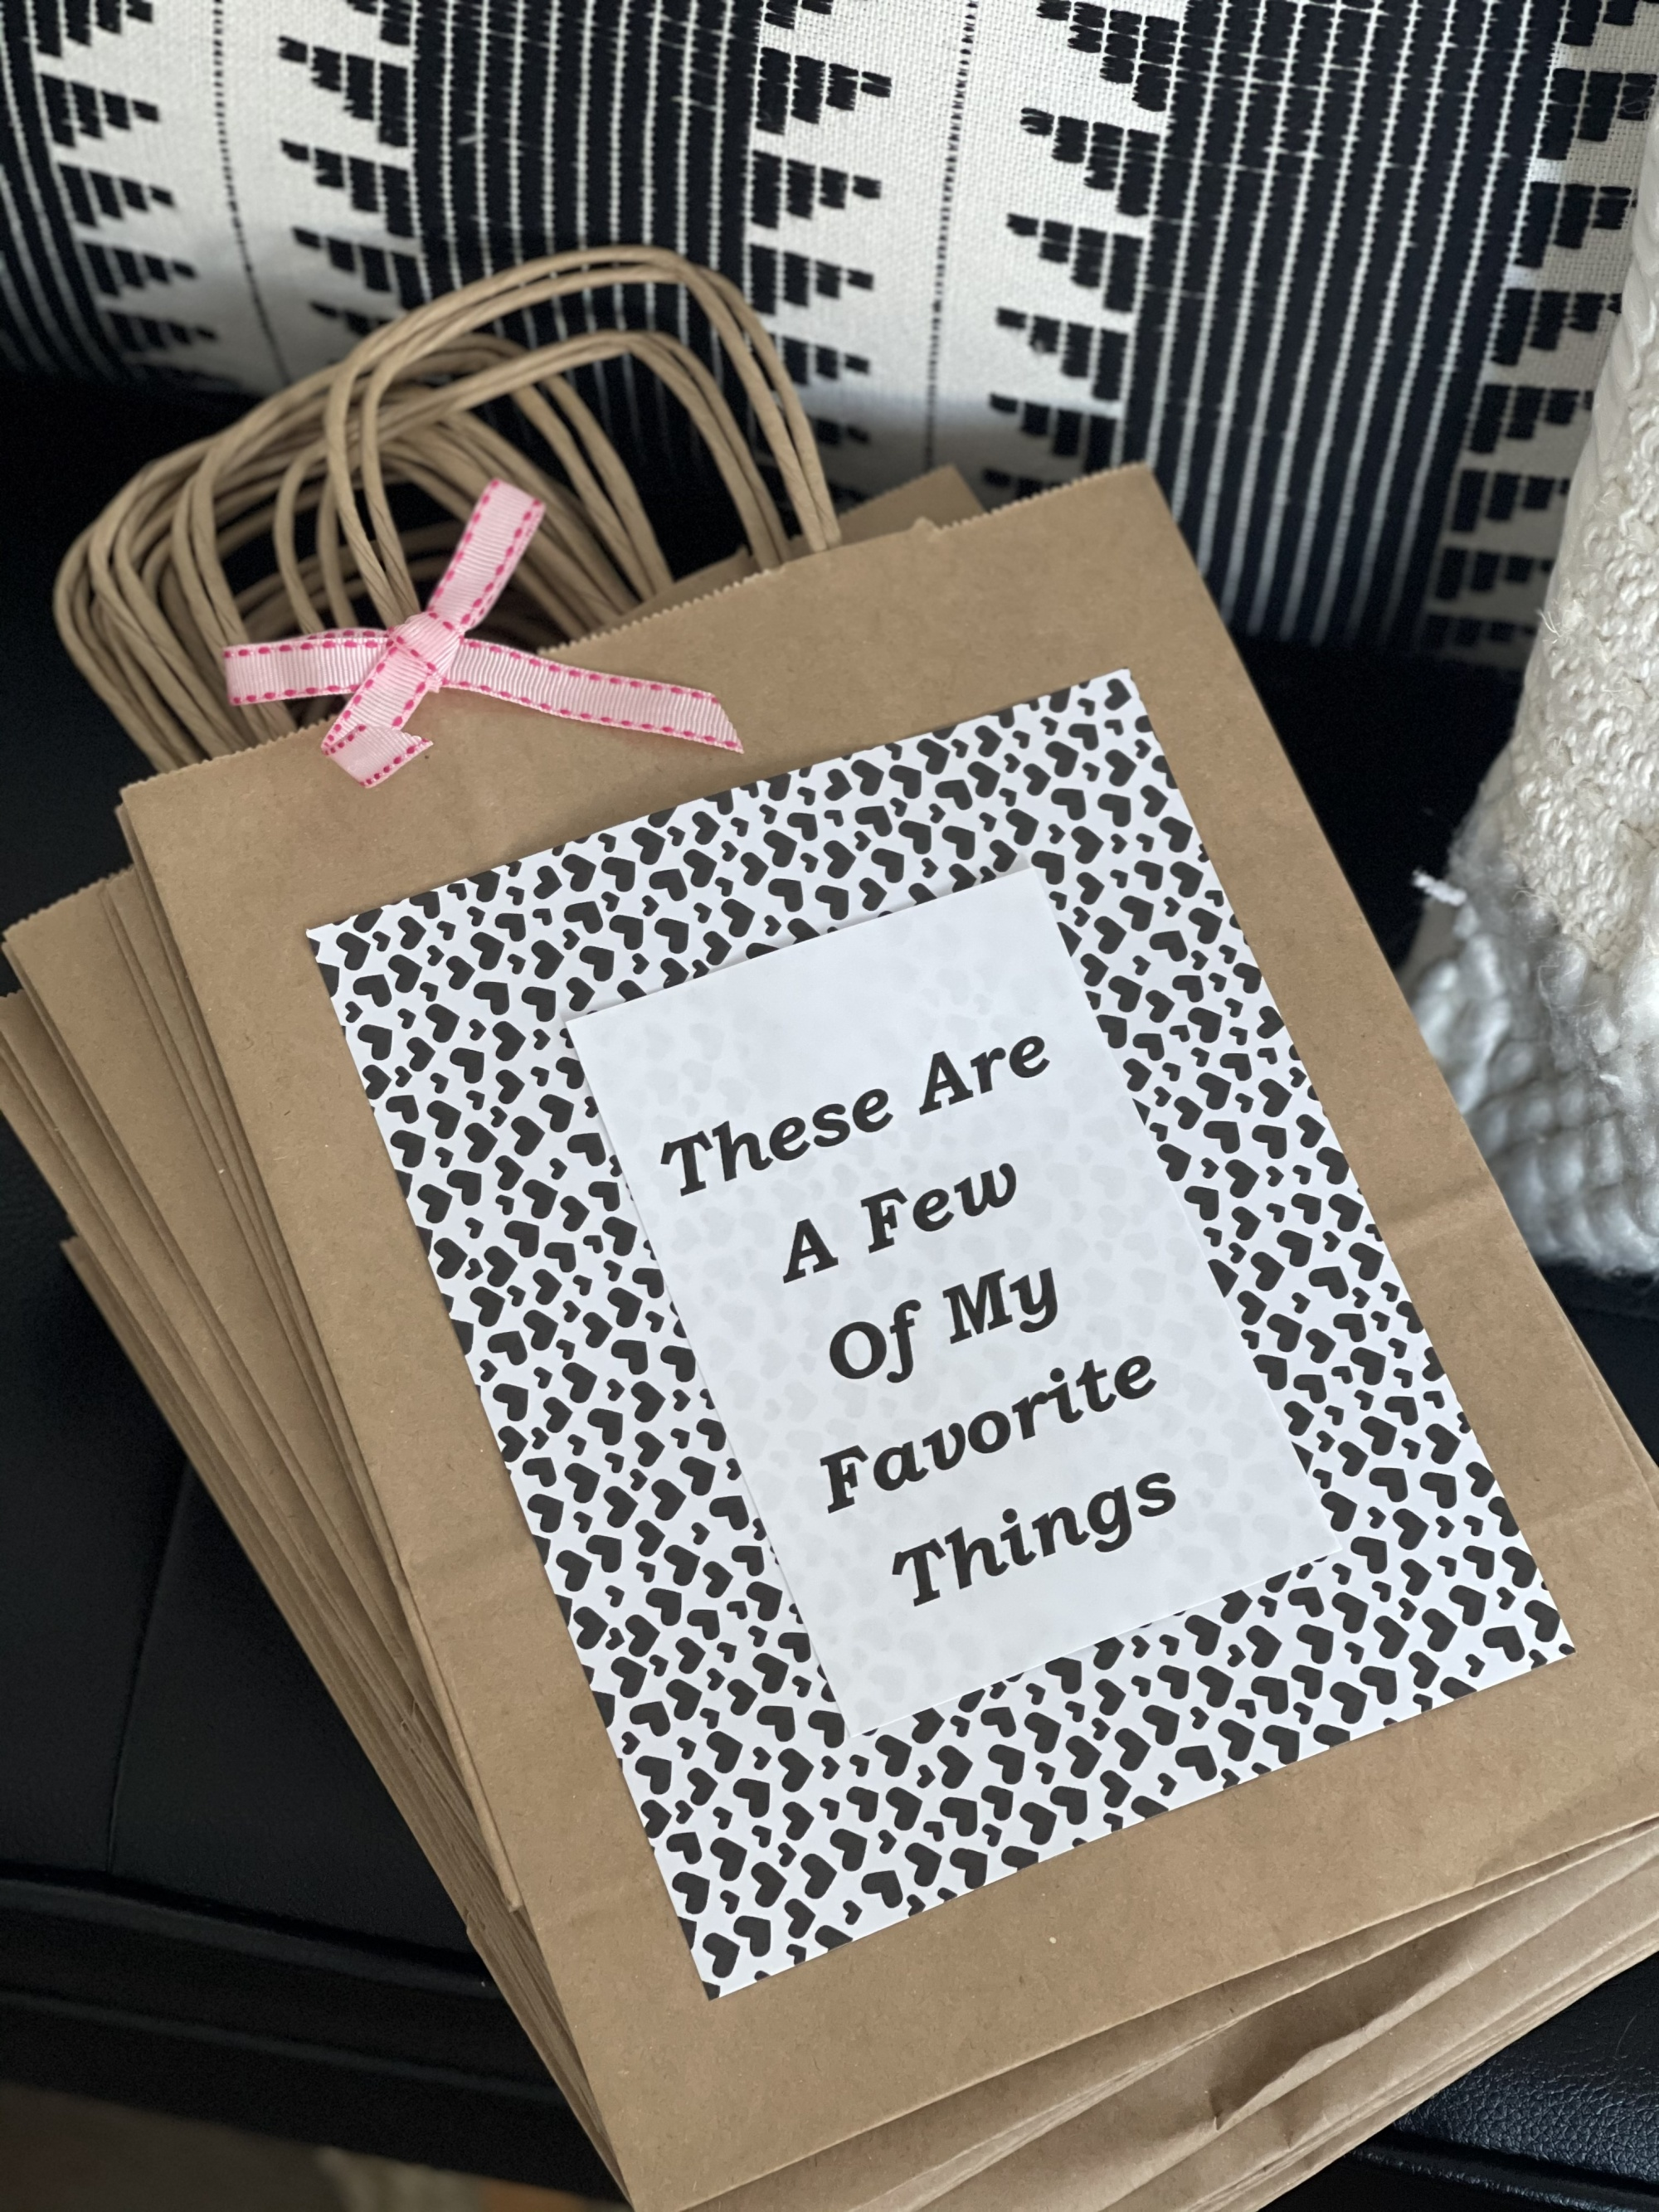 How to plan a Galentine's Day celebration your friends will love with a mimosa bar making These Are A Few of my Favorite Things party bags